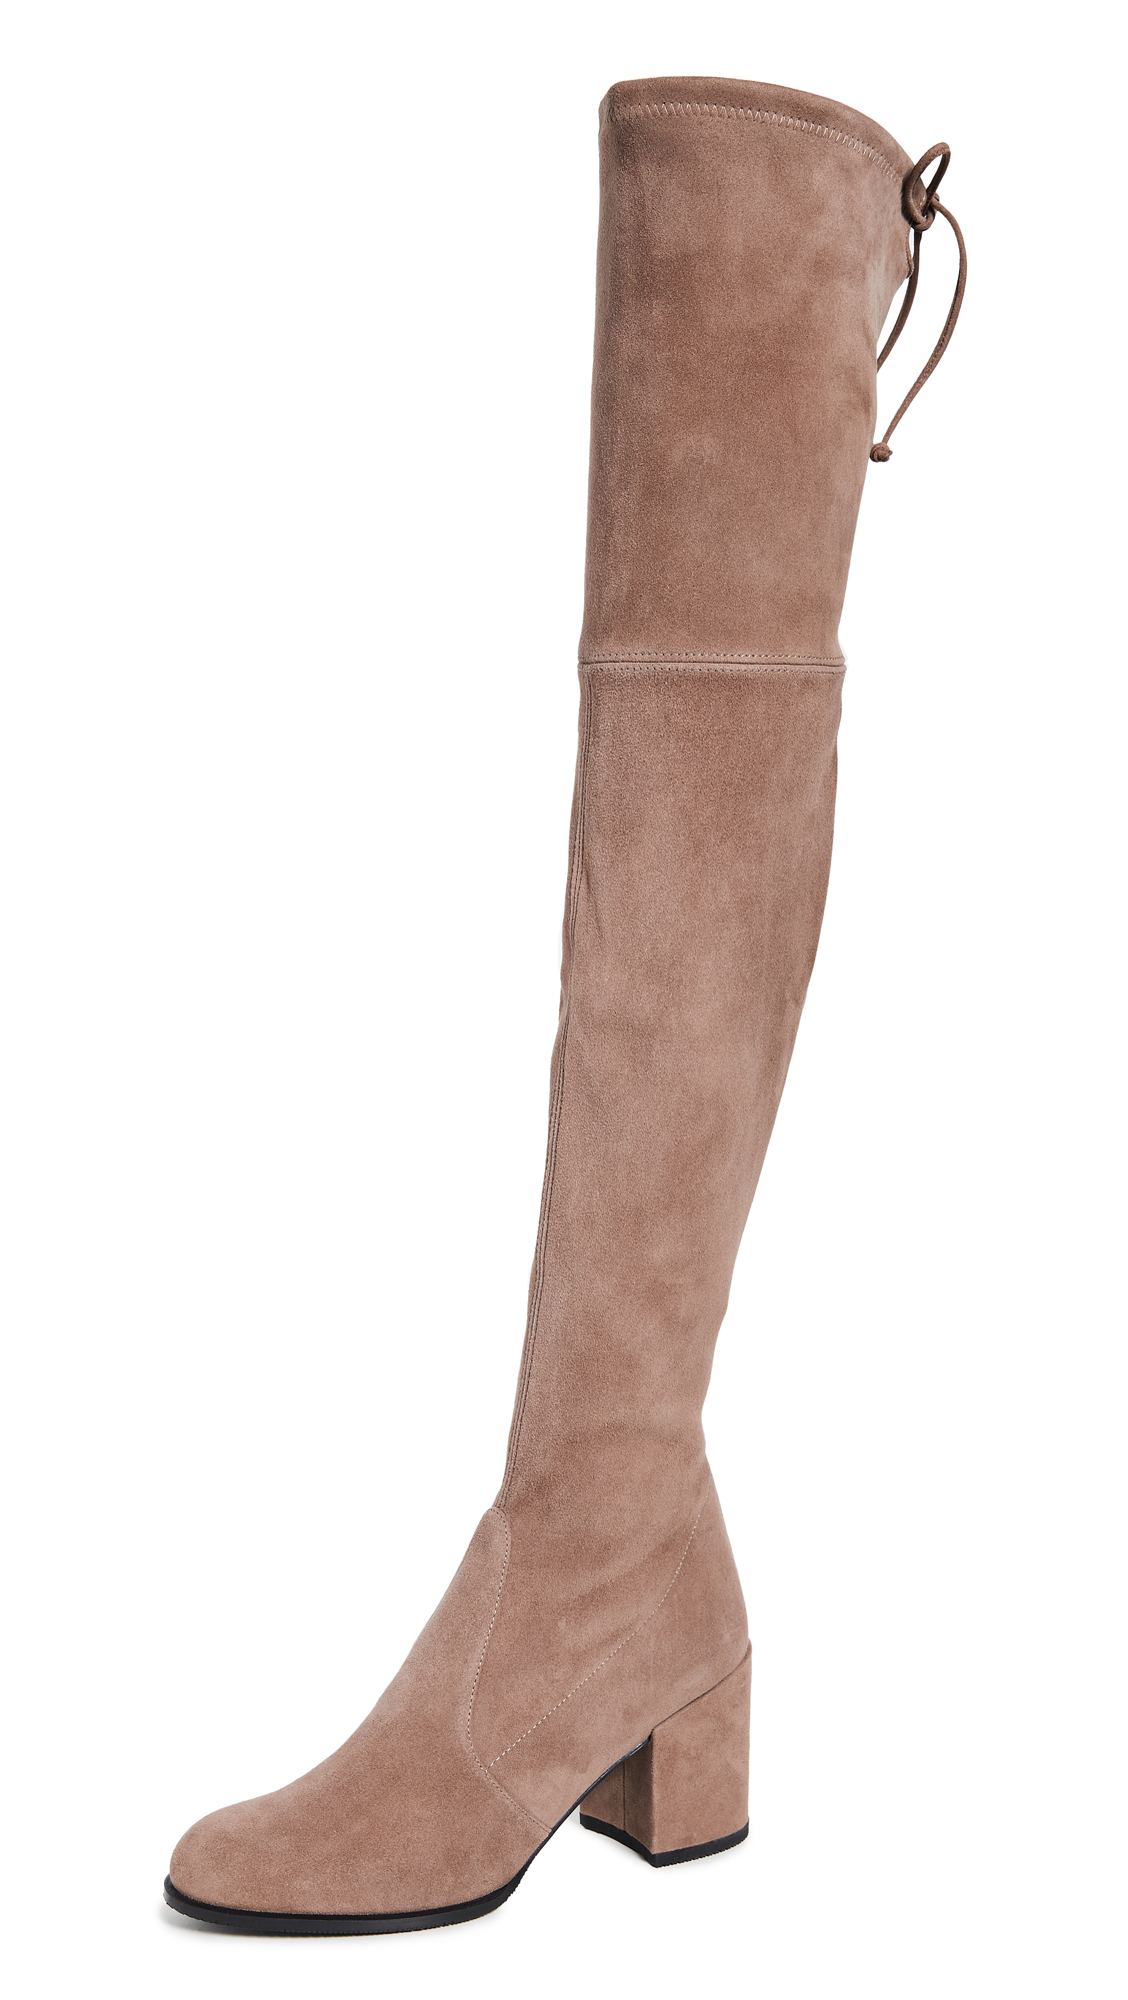 Stuart Weitzman Tieland Over the Knee Boots - Taupe